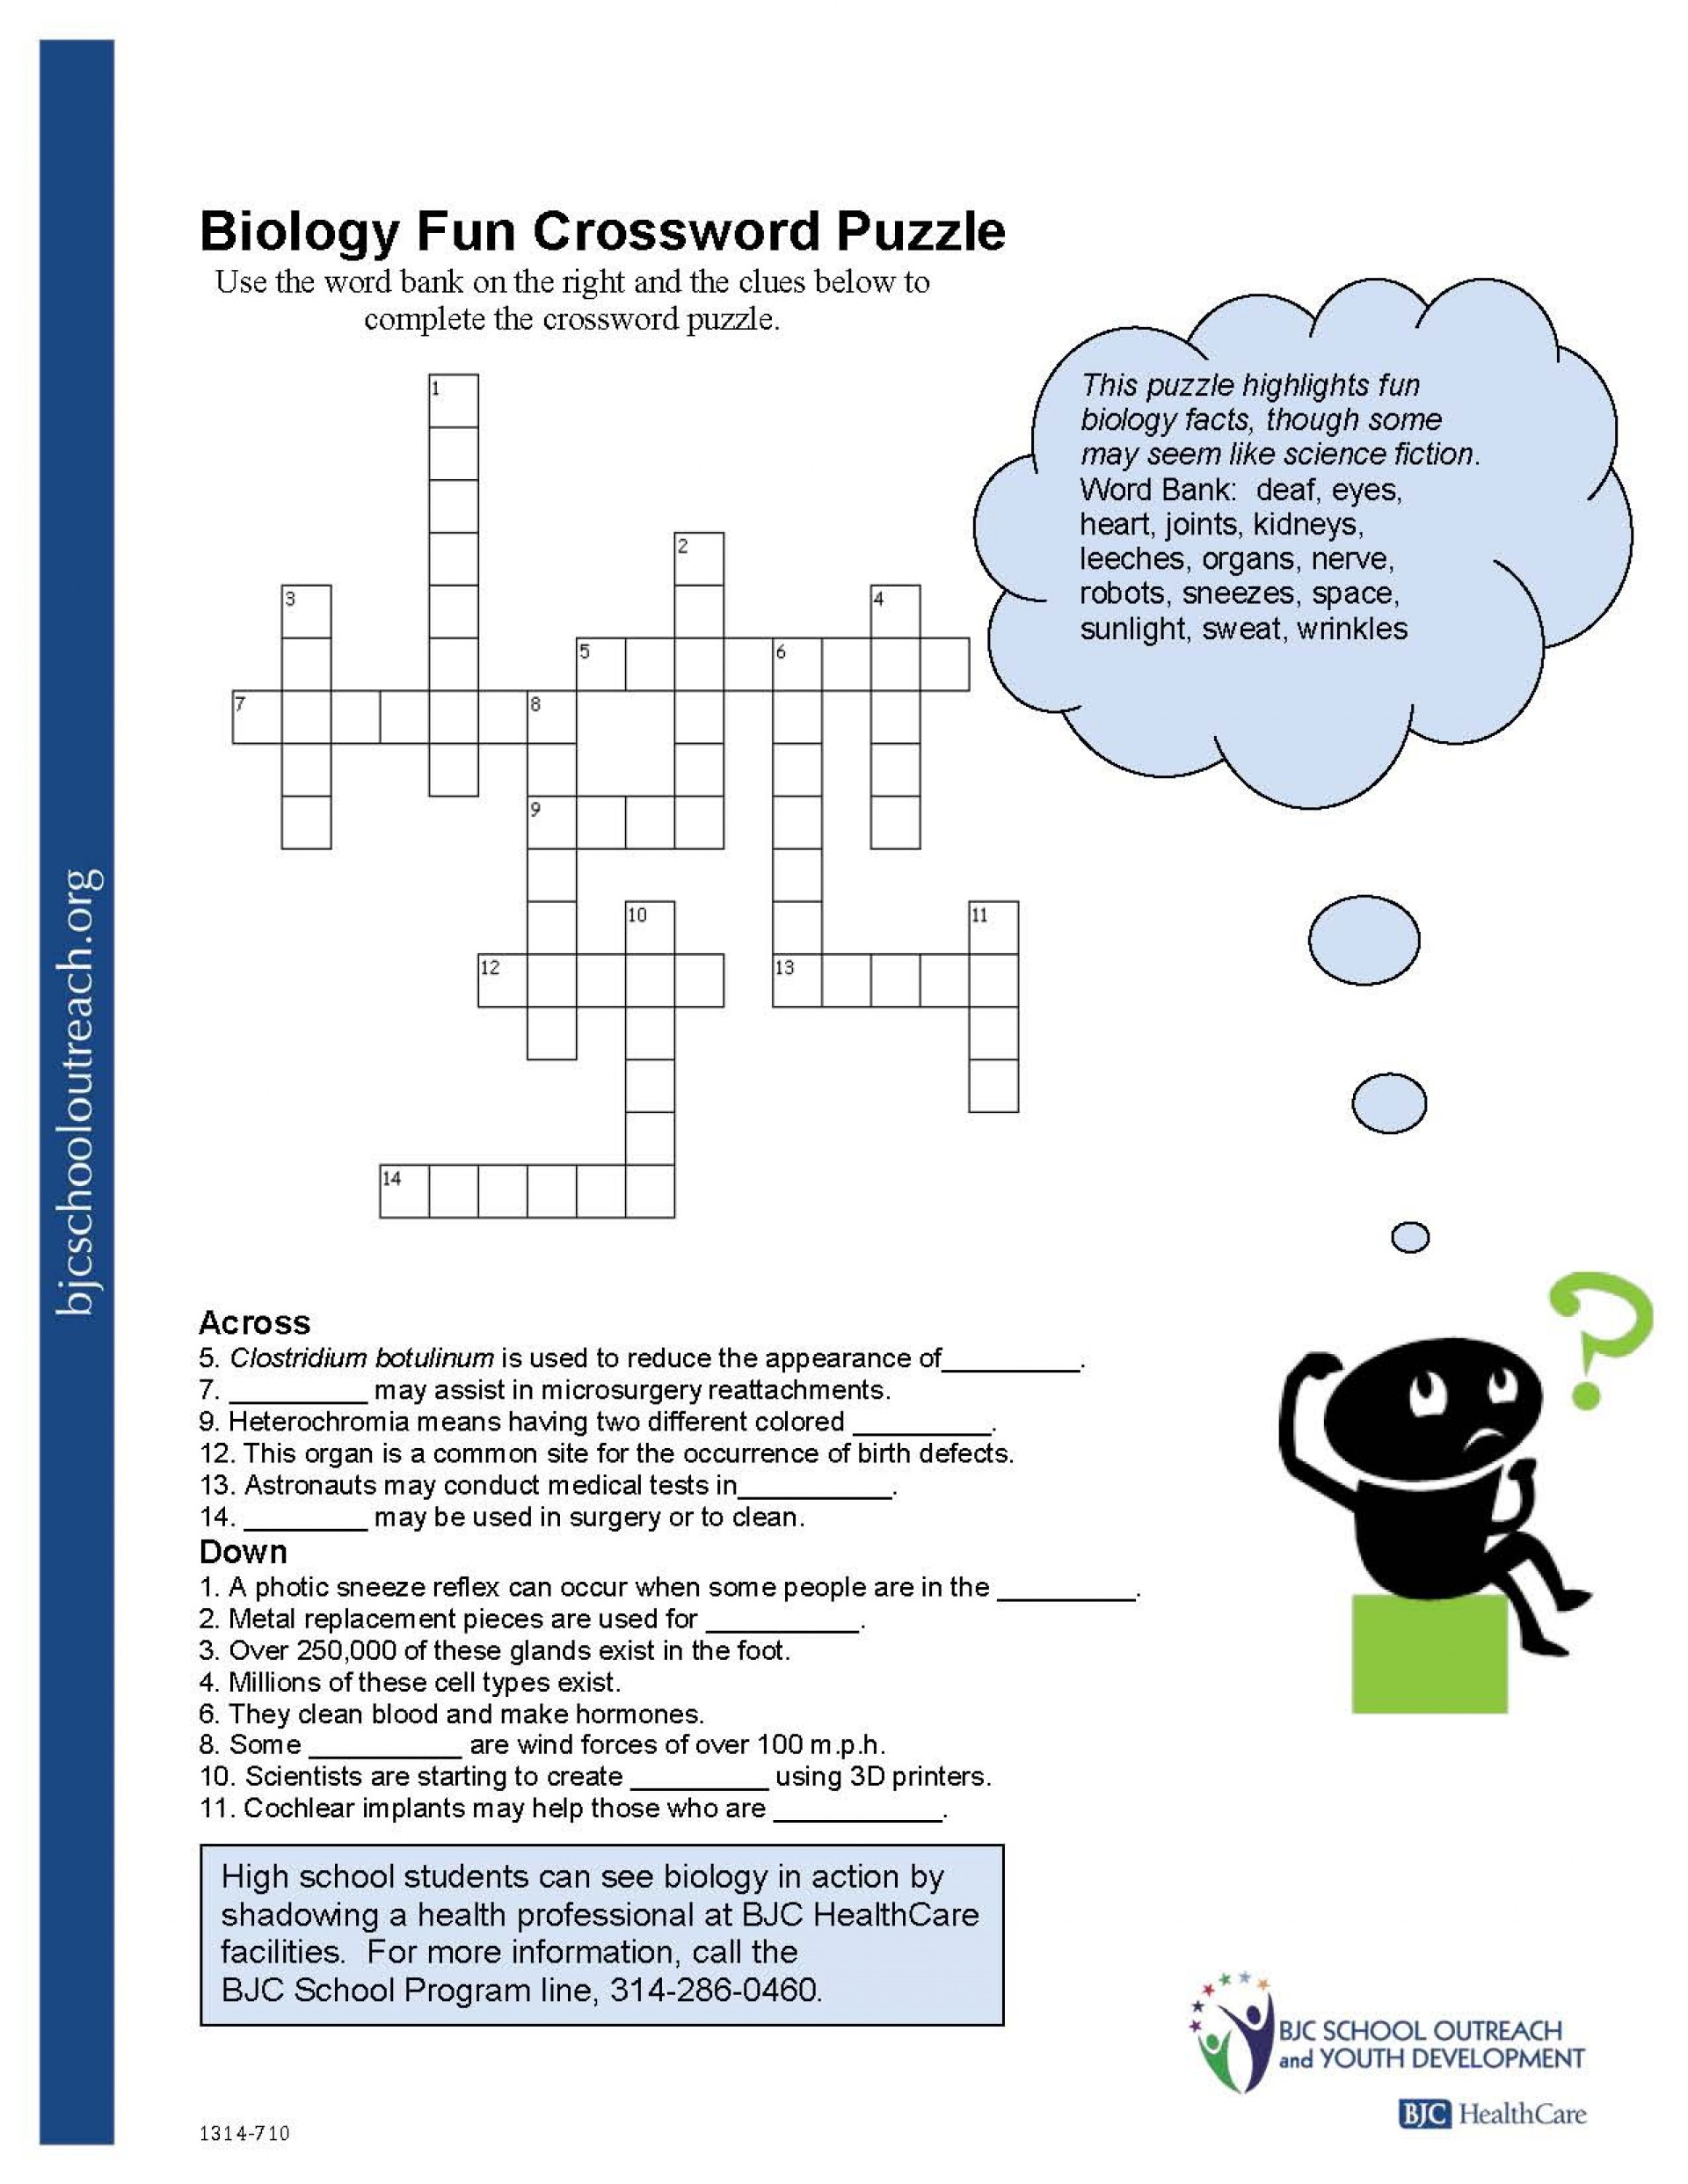 Crosswords Crossword Puzzle Worksheets For Middle School Biology Fun - Printable Crossword Puzzles With Word Bank